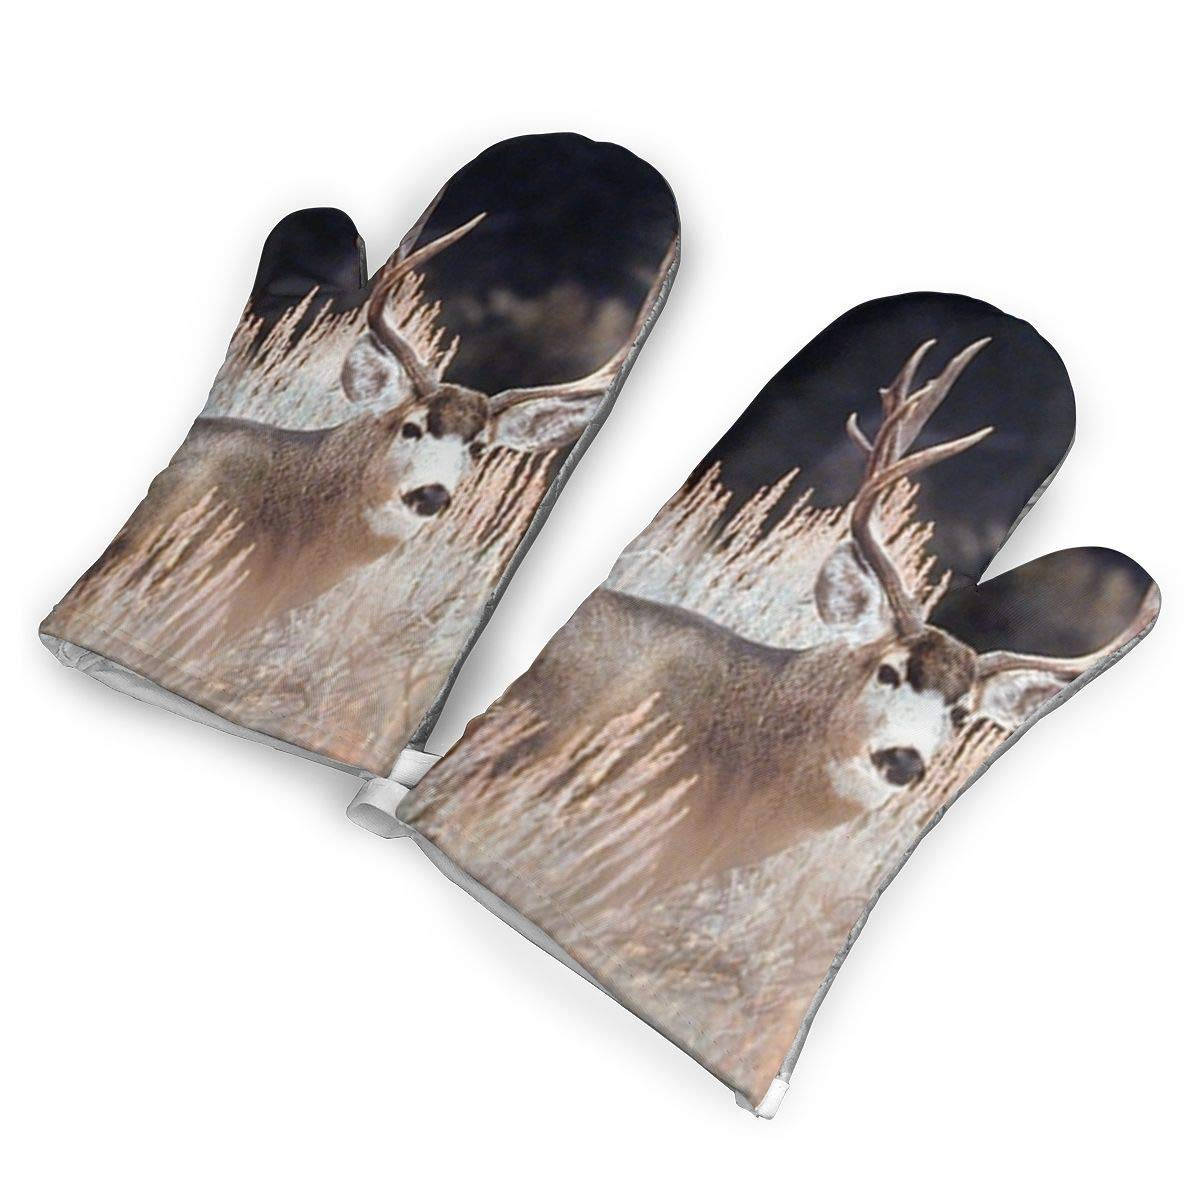 VANKINE Large Mule Deer Big Antler Rack Animal Oven Mitts Cooking Gloves 480 F Heat Resistant, Non Slip Grip Pot Holders for Kitchen Oven BBQ Grill and Fire Pits for Cooking Baking